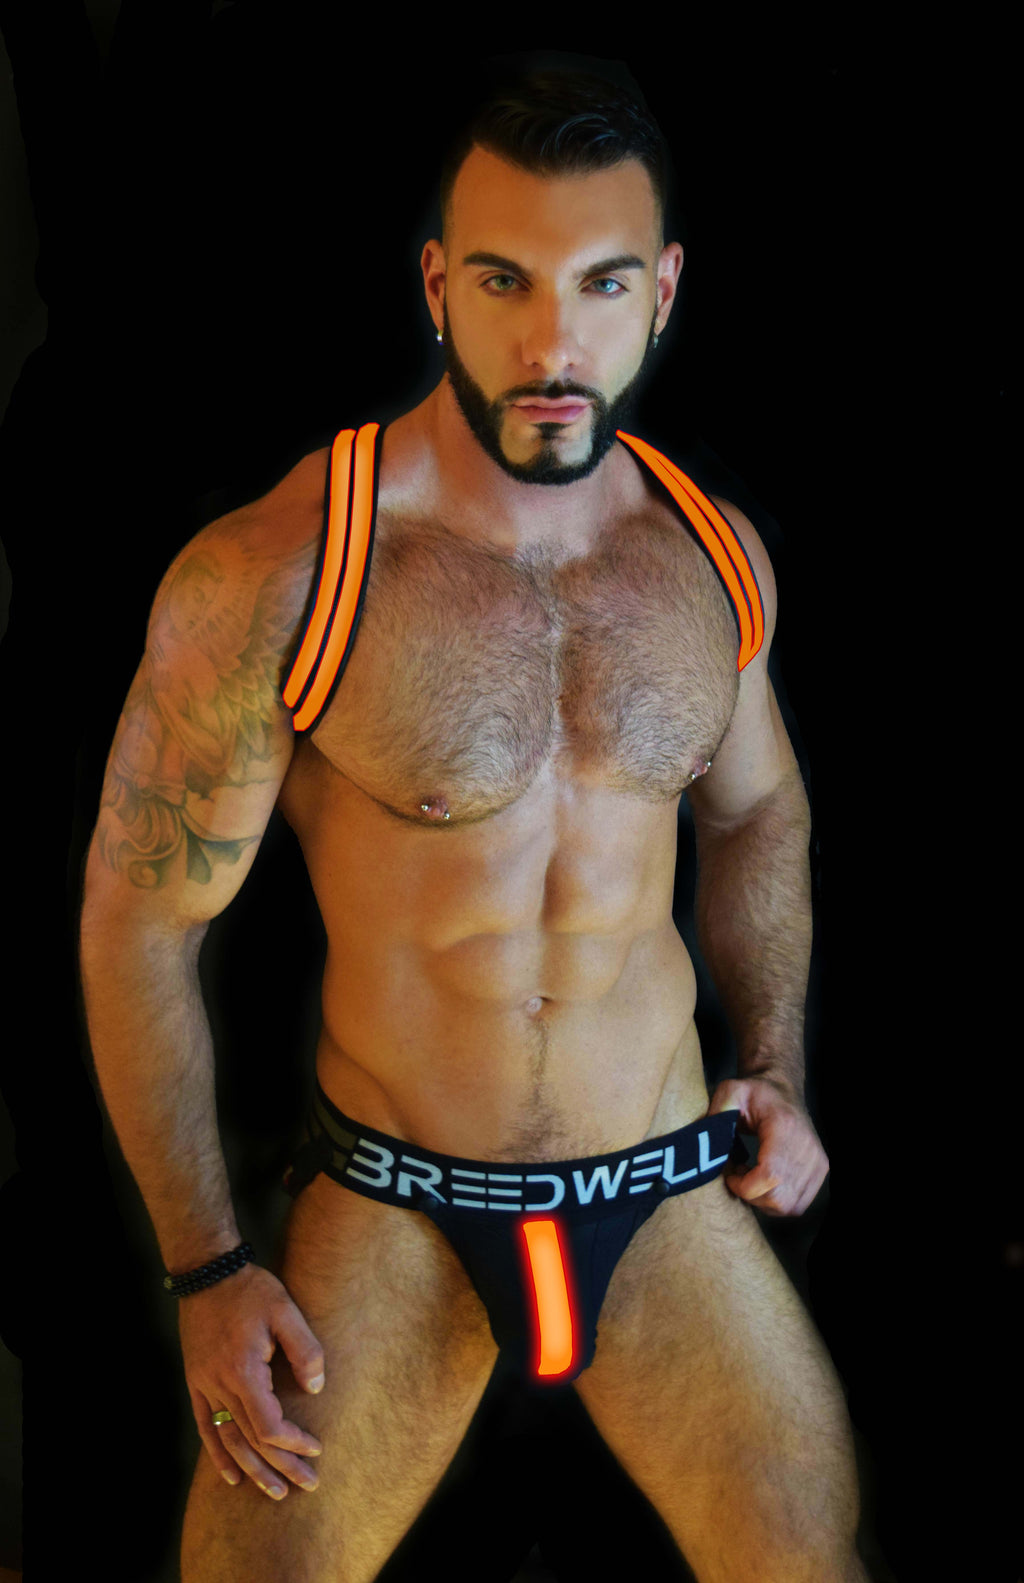 ORANGE GLOW LEGSTRAP  JOCK SYSTEM